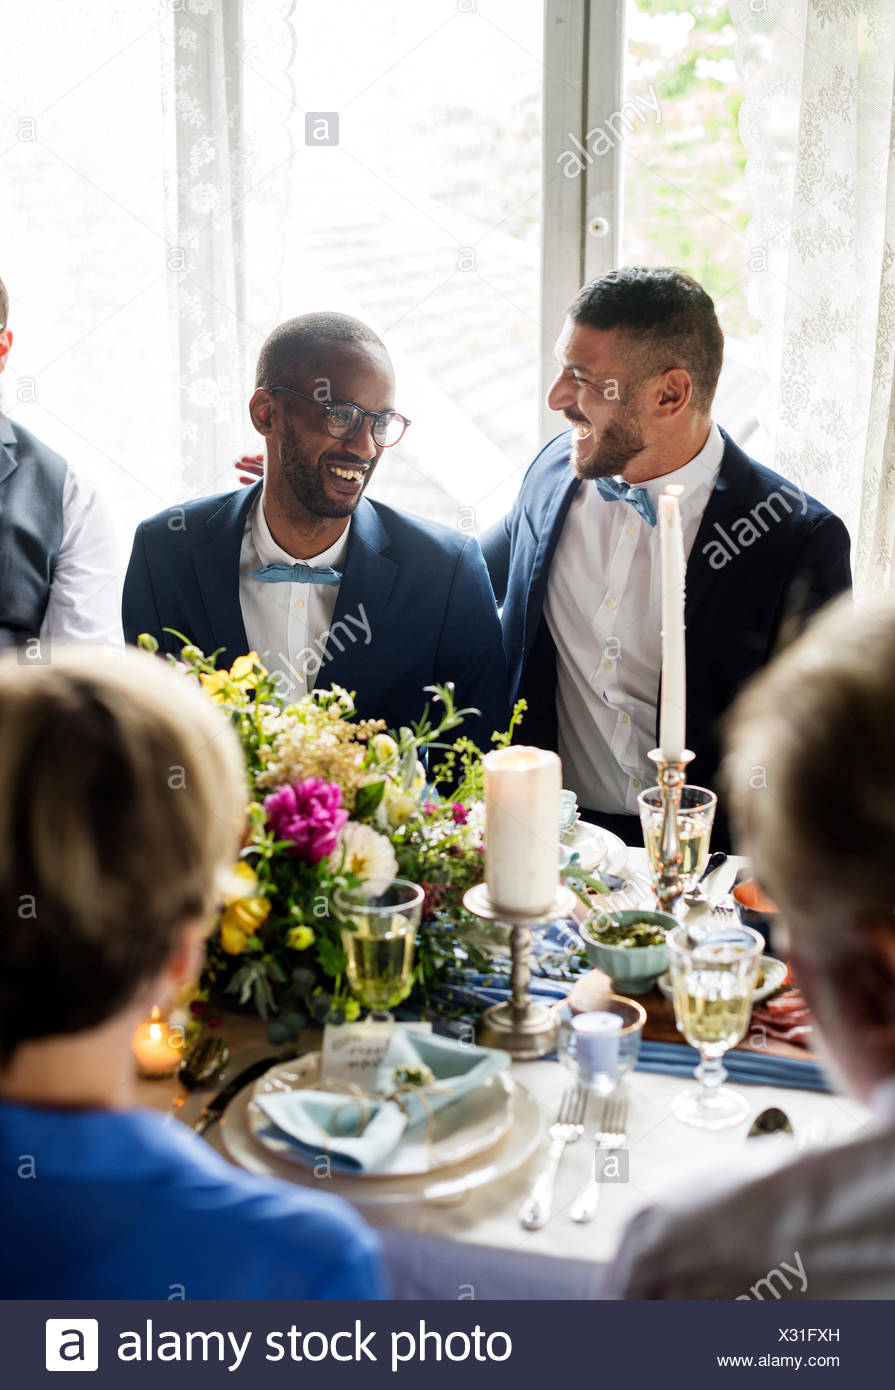 Cheerful Gay Couple in Wedding Reception - Stock Image